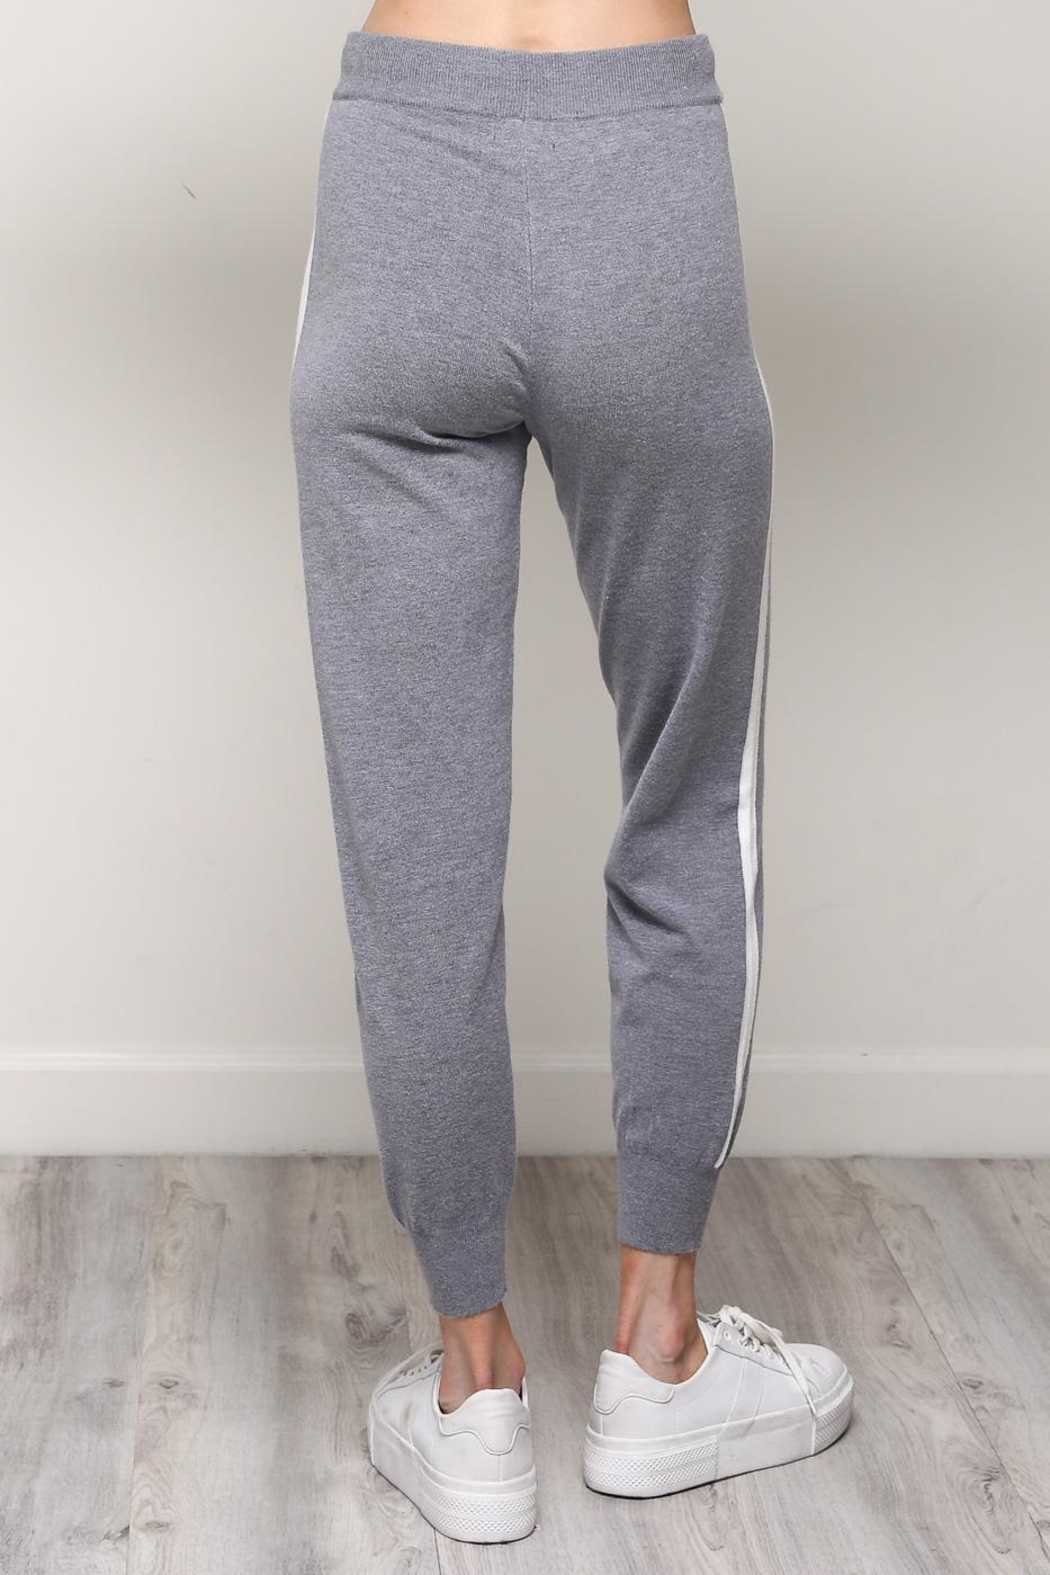 Mustard Seed White Stripe Joggers - Side Cropped Image